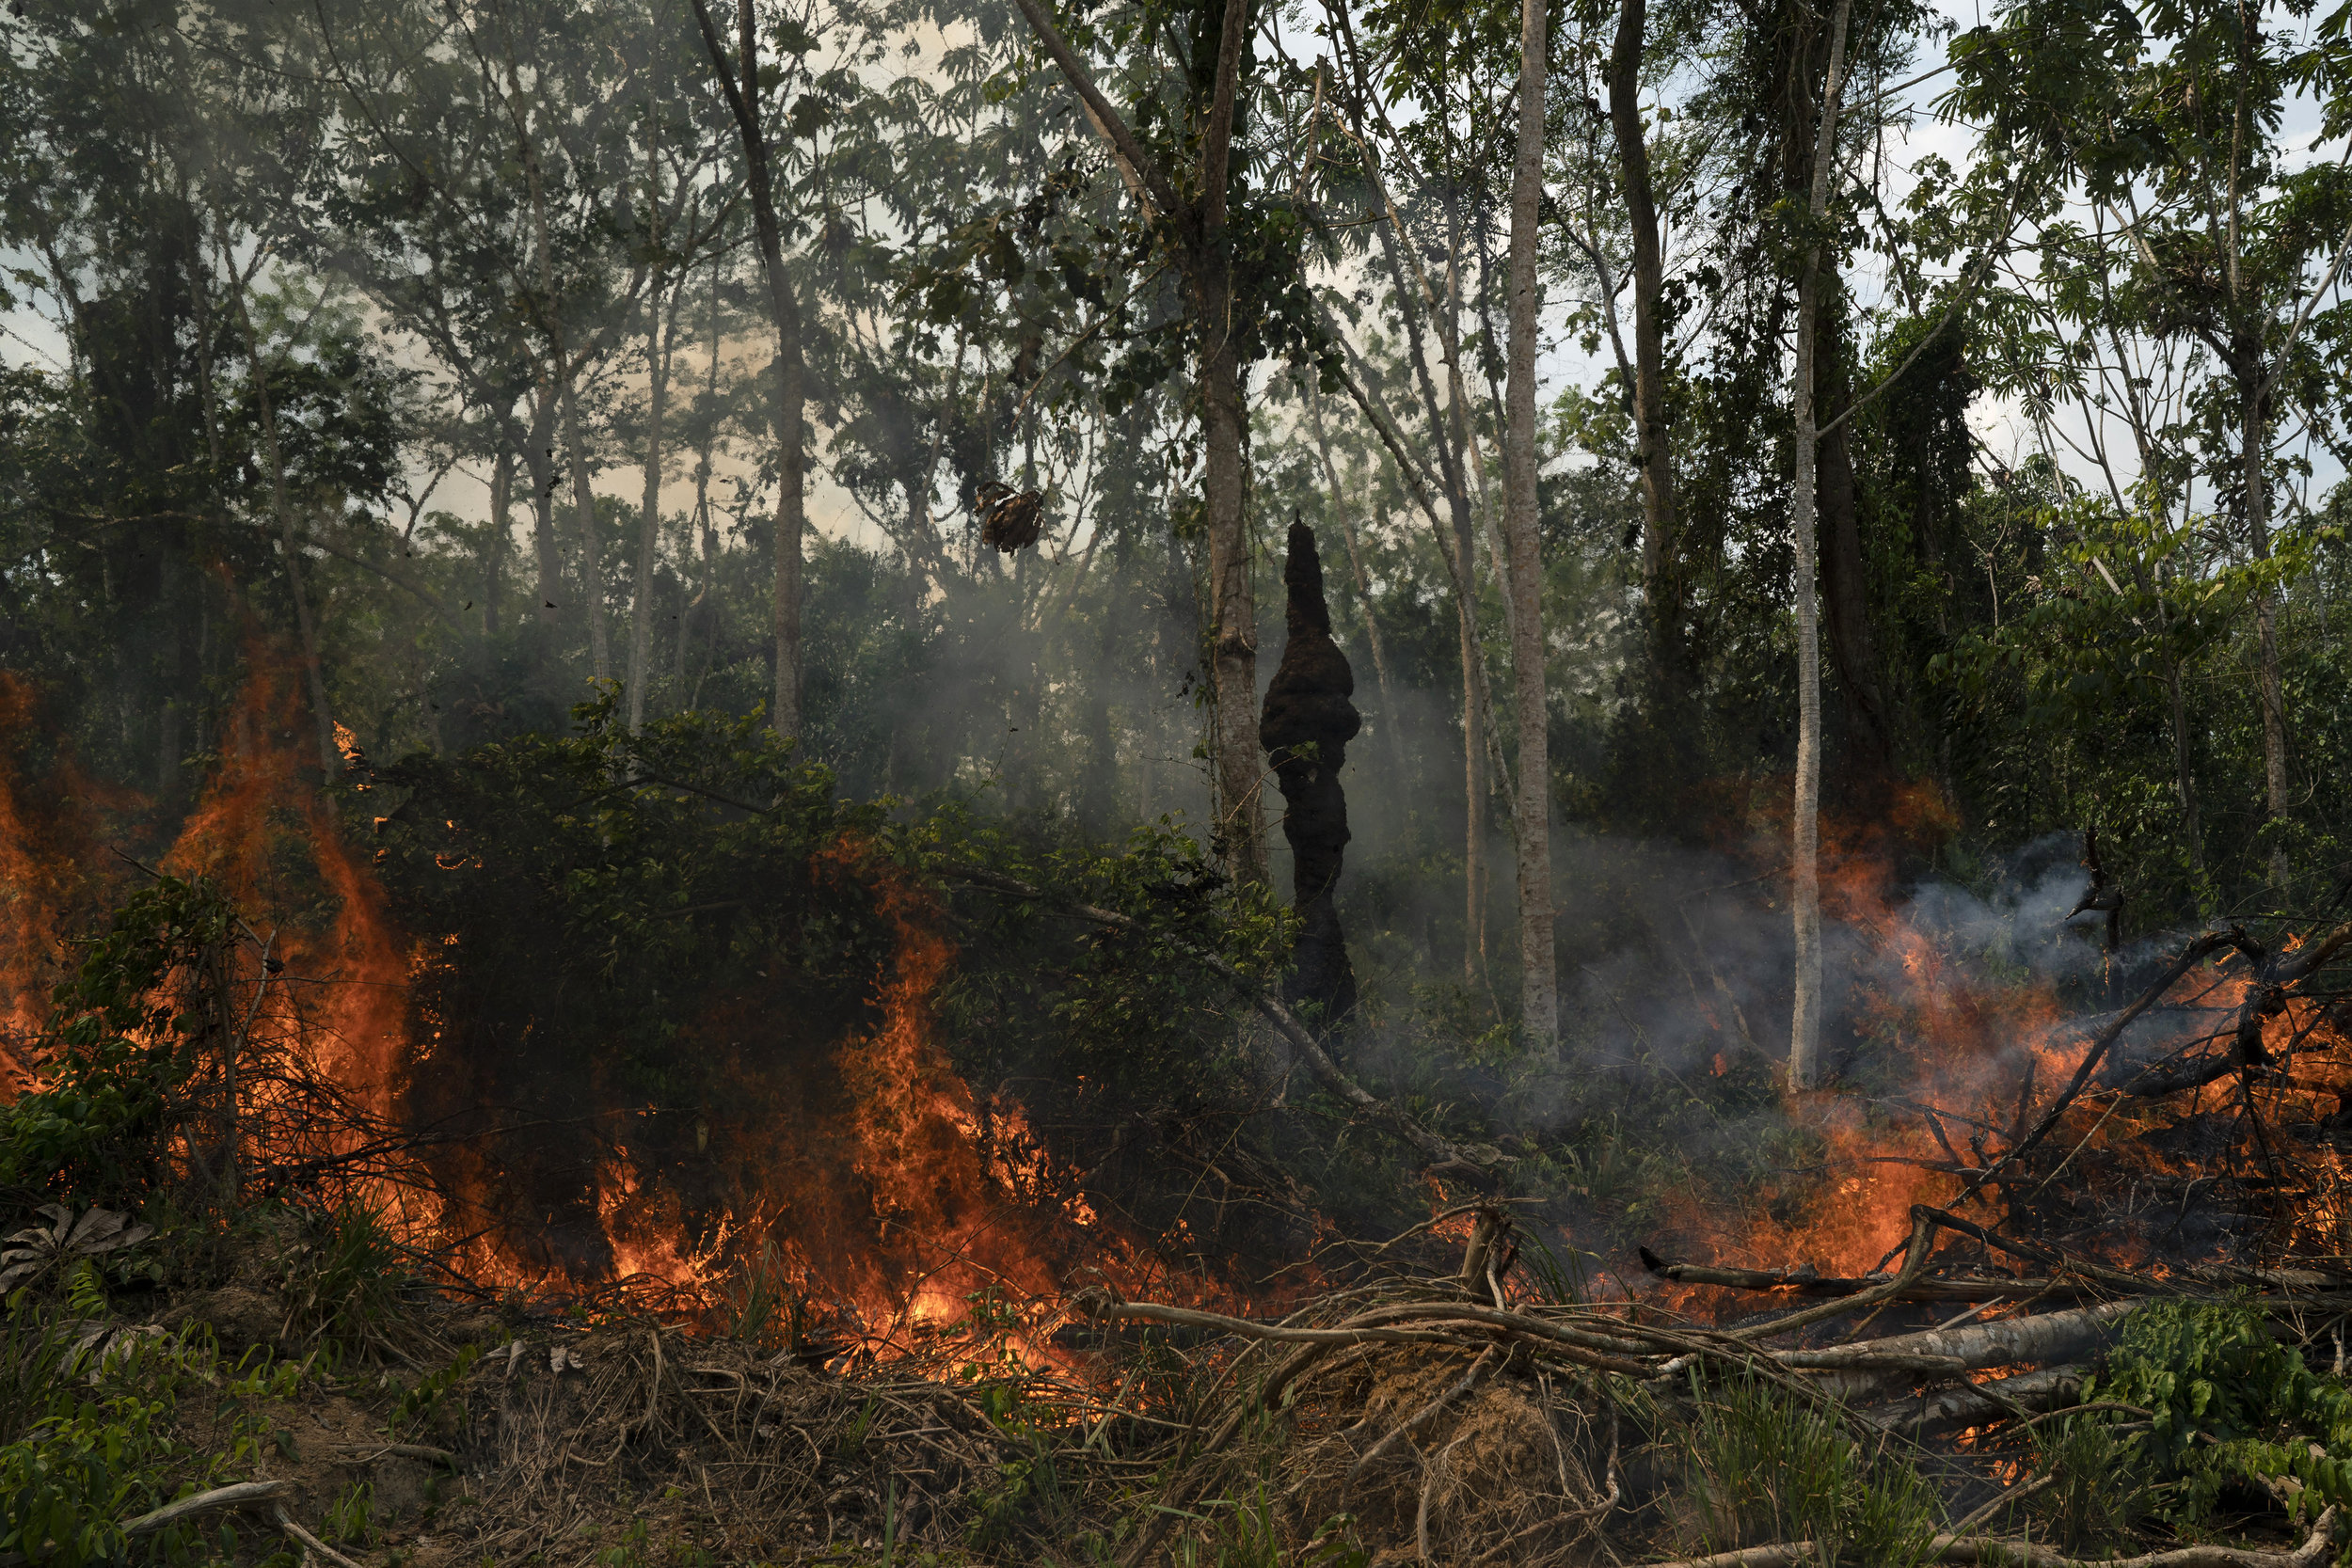 Freshly cut jungle begins to burn at the Nova Fronteira region in Novo Progresso, Brazil, Tuesday, Sept. 3, 2019.  Photo from the Associated Press.